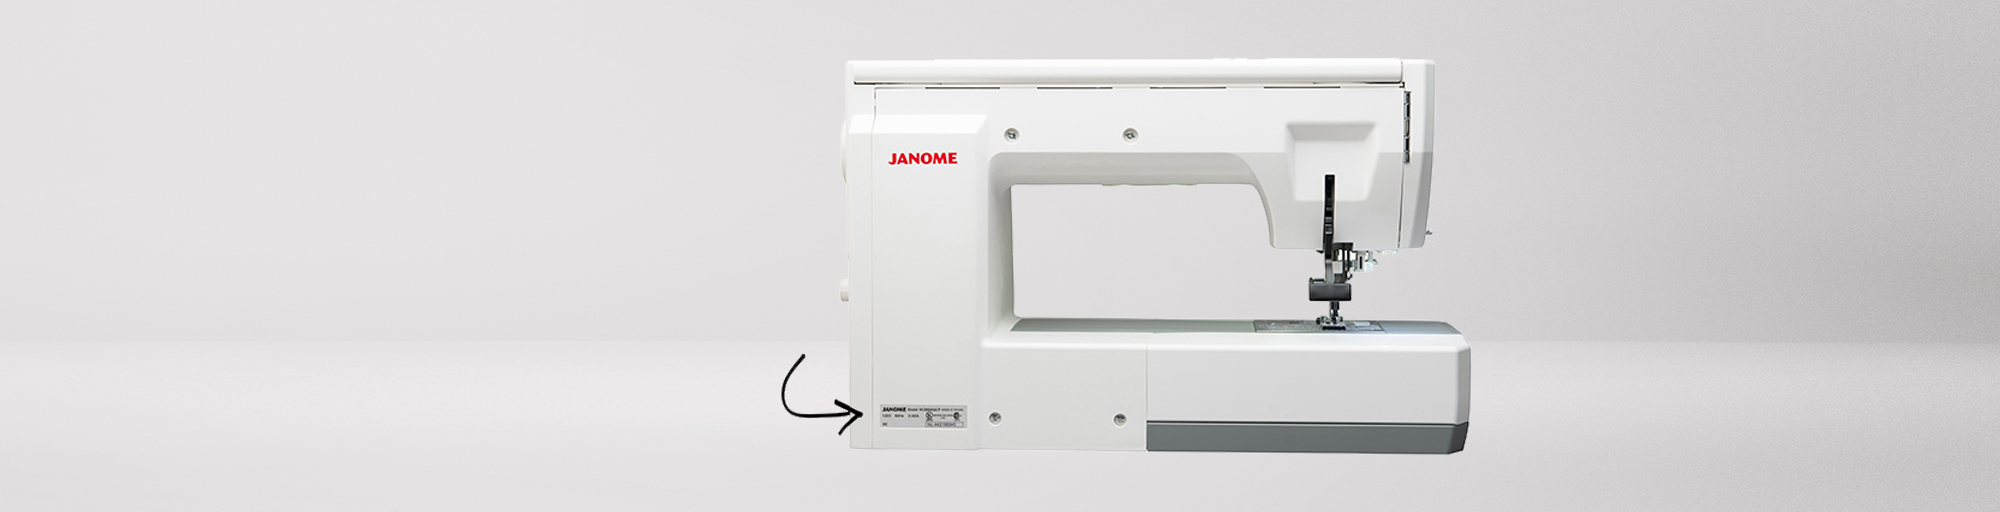 janome sewing machine serial number